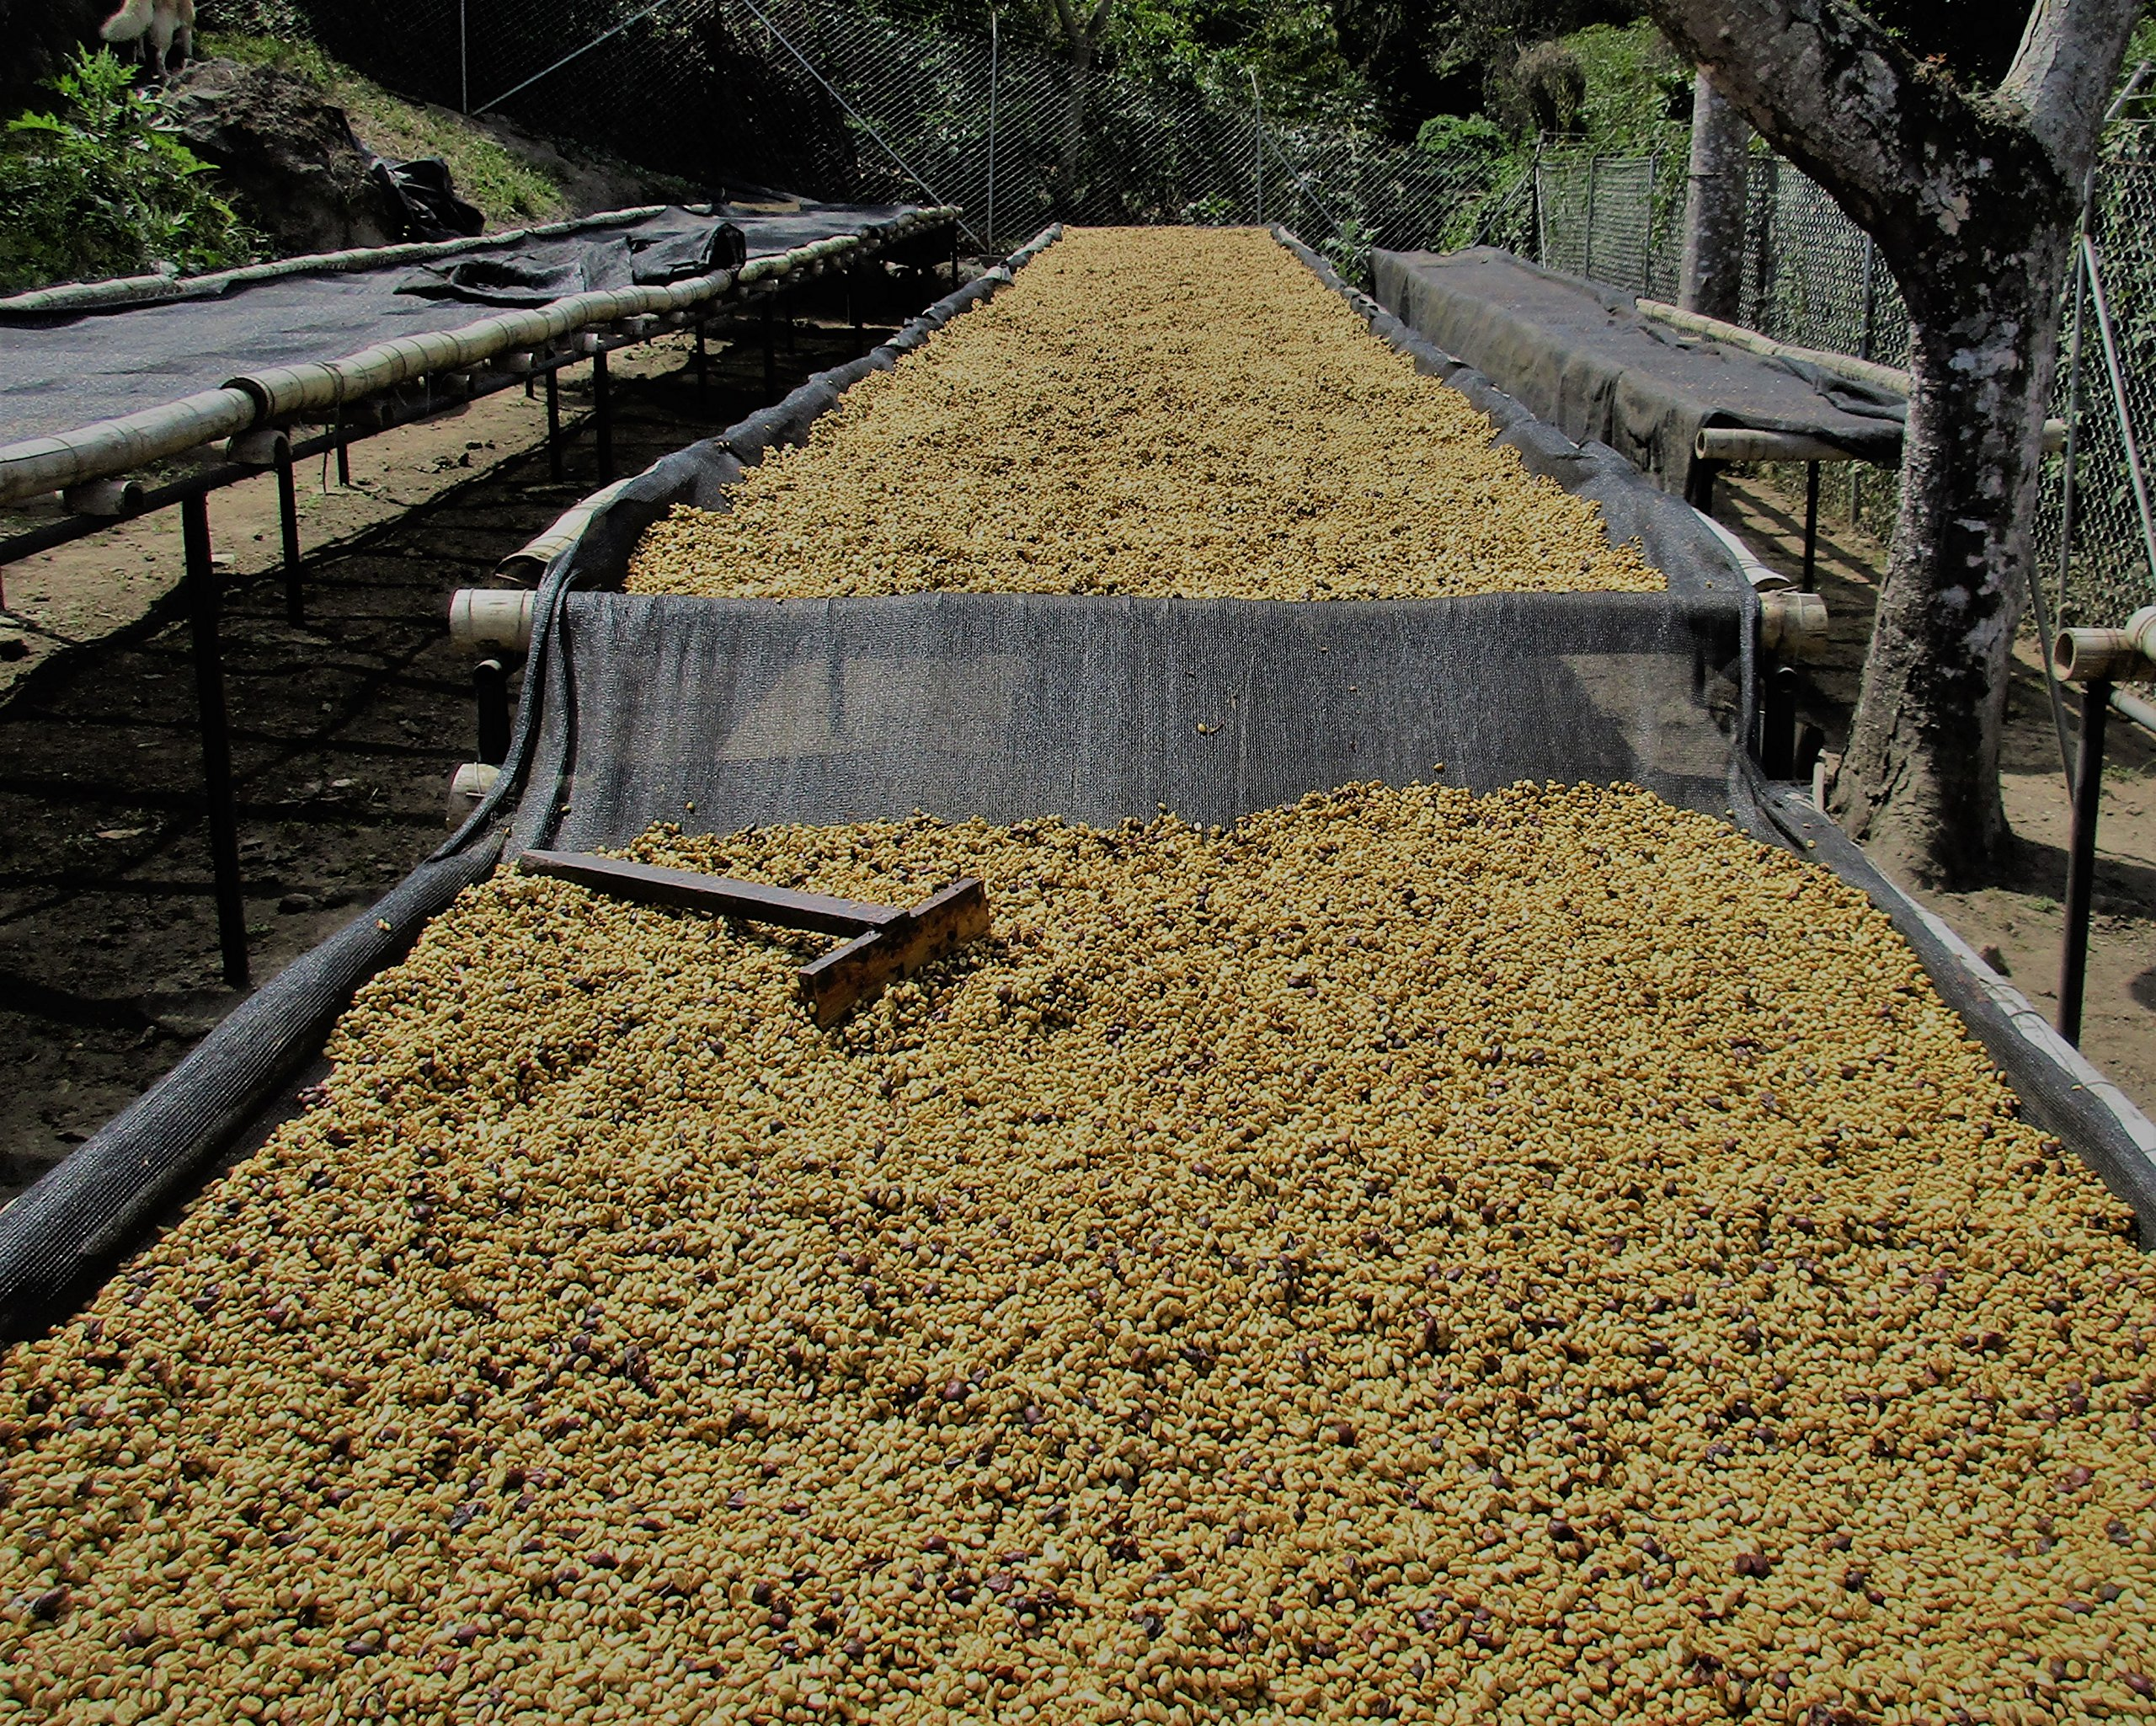 El Salvador Colomba Honey #16 (5 LB) Unroasted Green Coffee Beans for Roasting - Raw Specialty Arabica Coffee